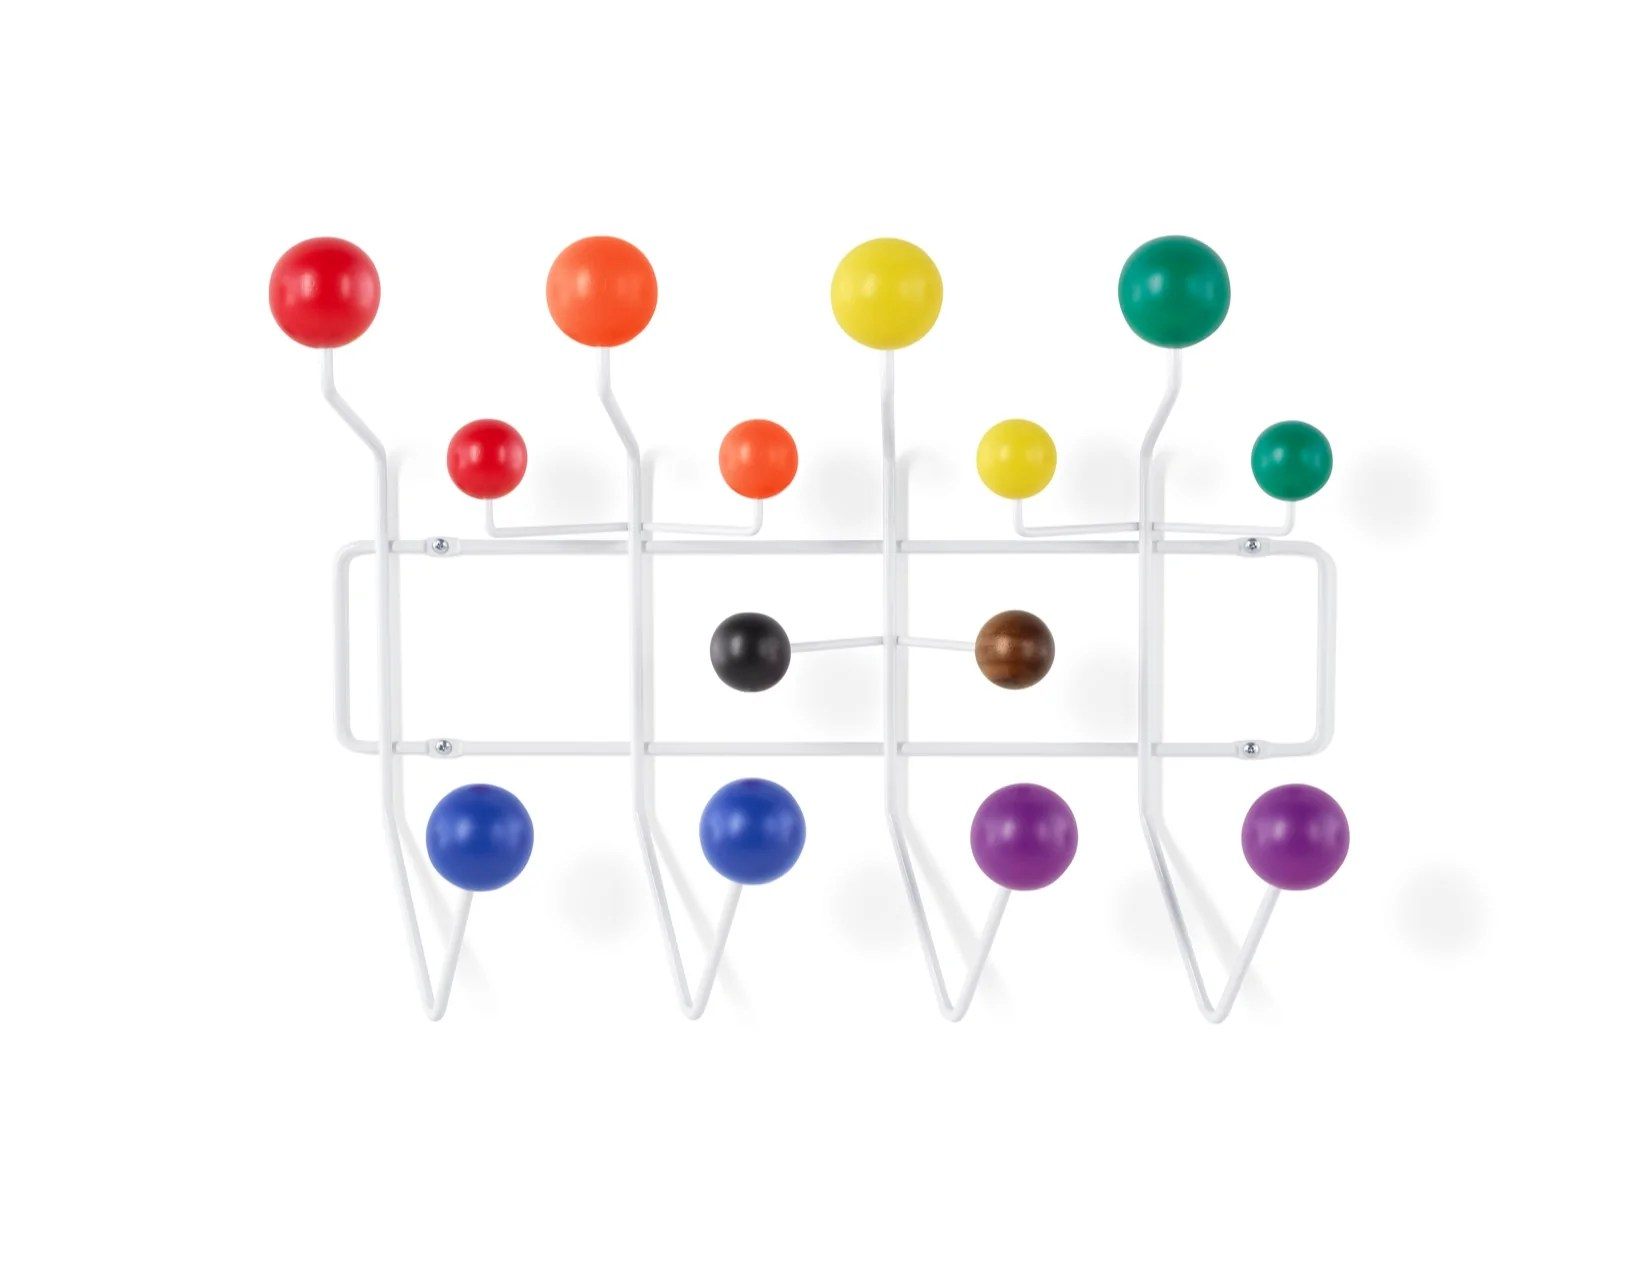 Eames Hang It All Designed By Charles And Ray Eames Produced By Herma Lennox Harvey